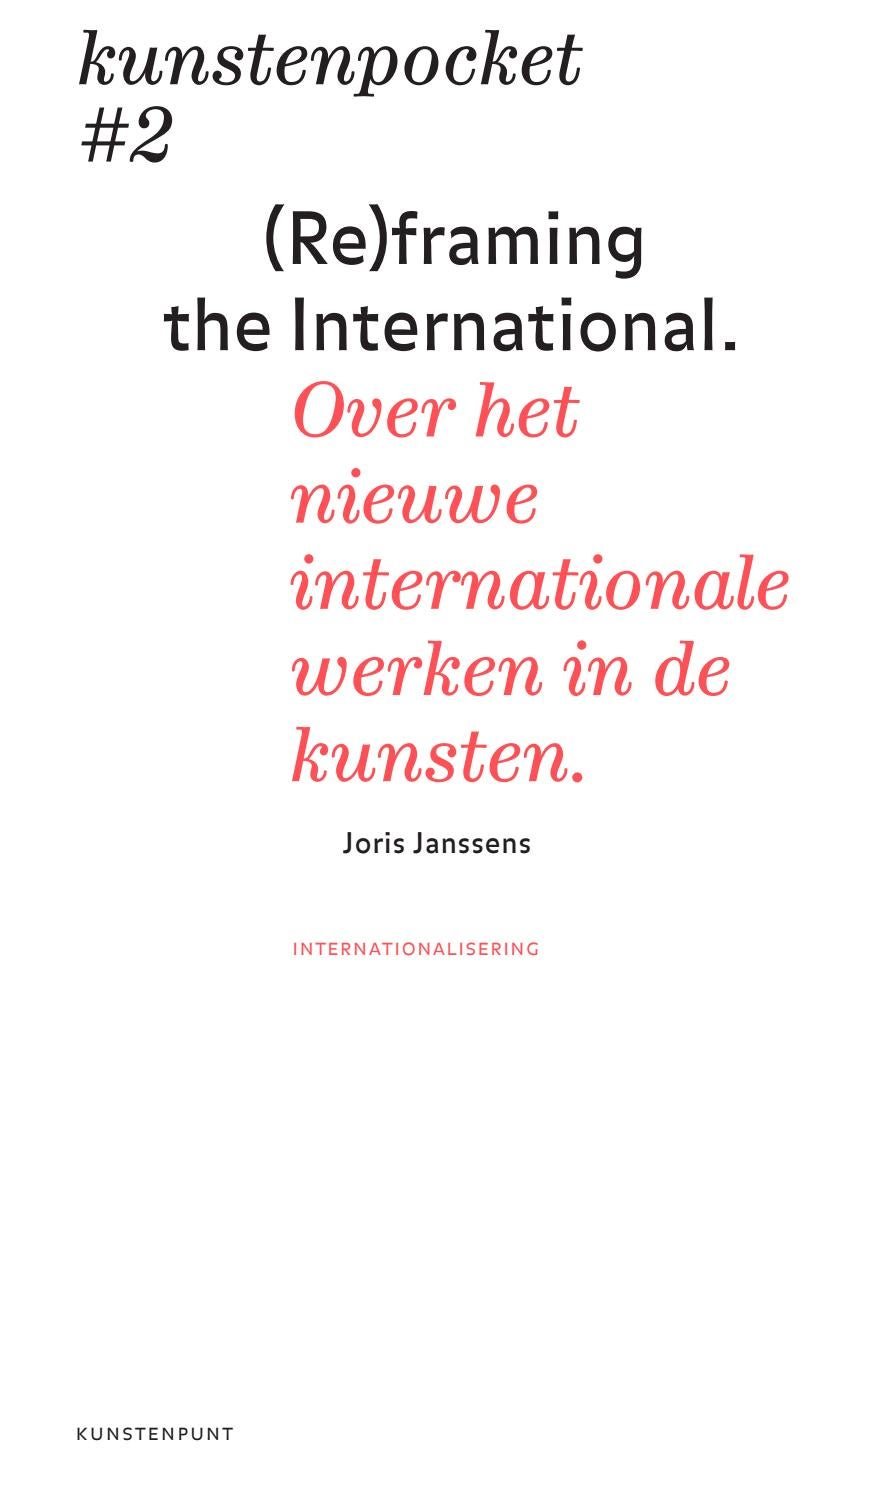 Kunstenpocket #2 | (Re)framing the International (NL) by